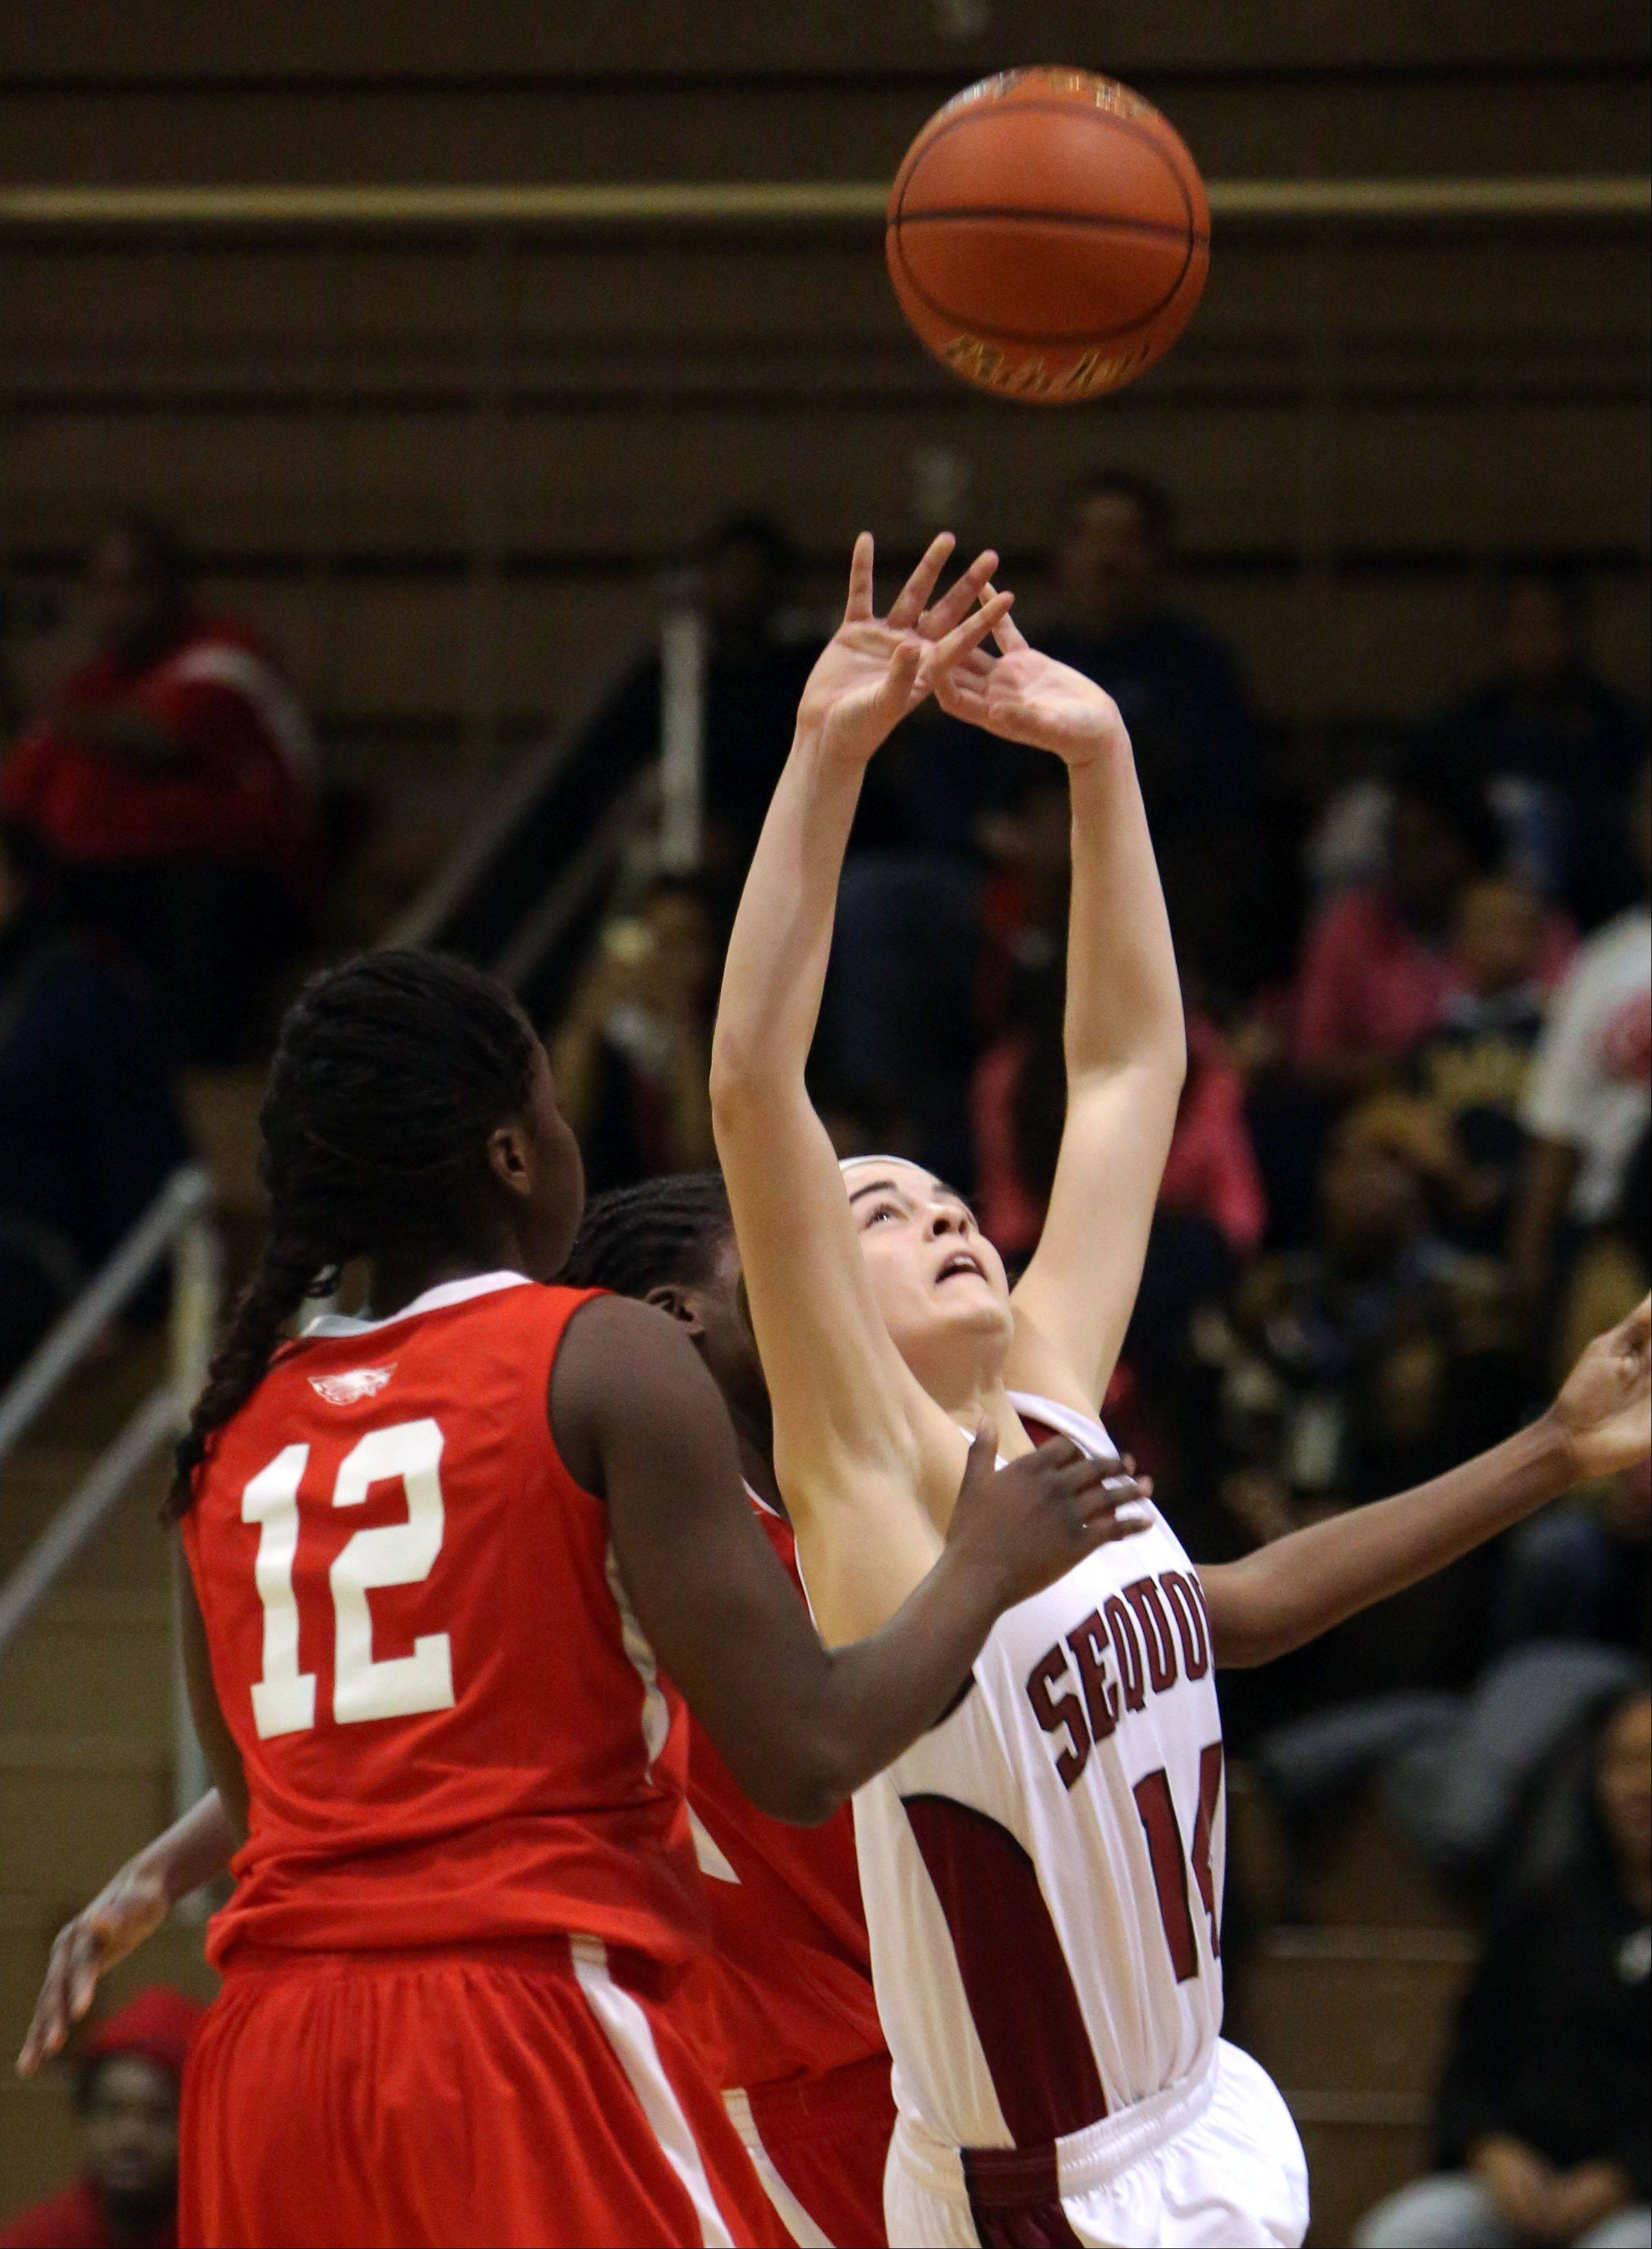 Antioch's Amy Reiser, right, shoots over North Chicago's Kylah Collins on Wednesday night at Antioch.